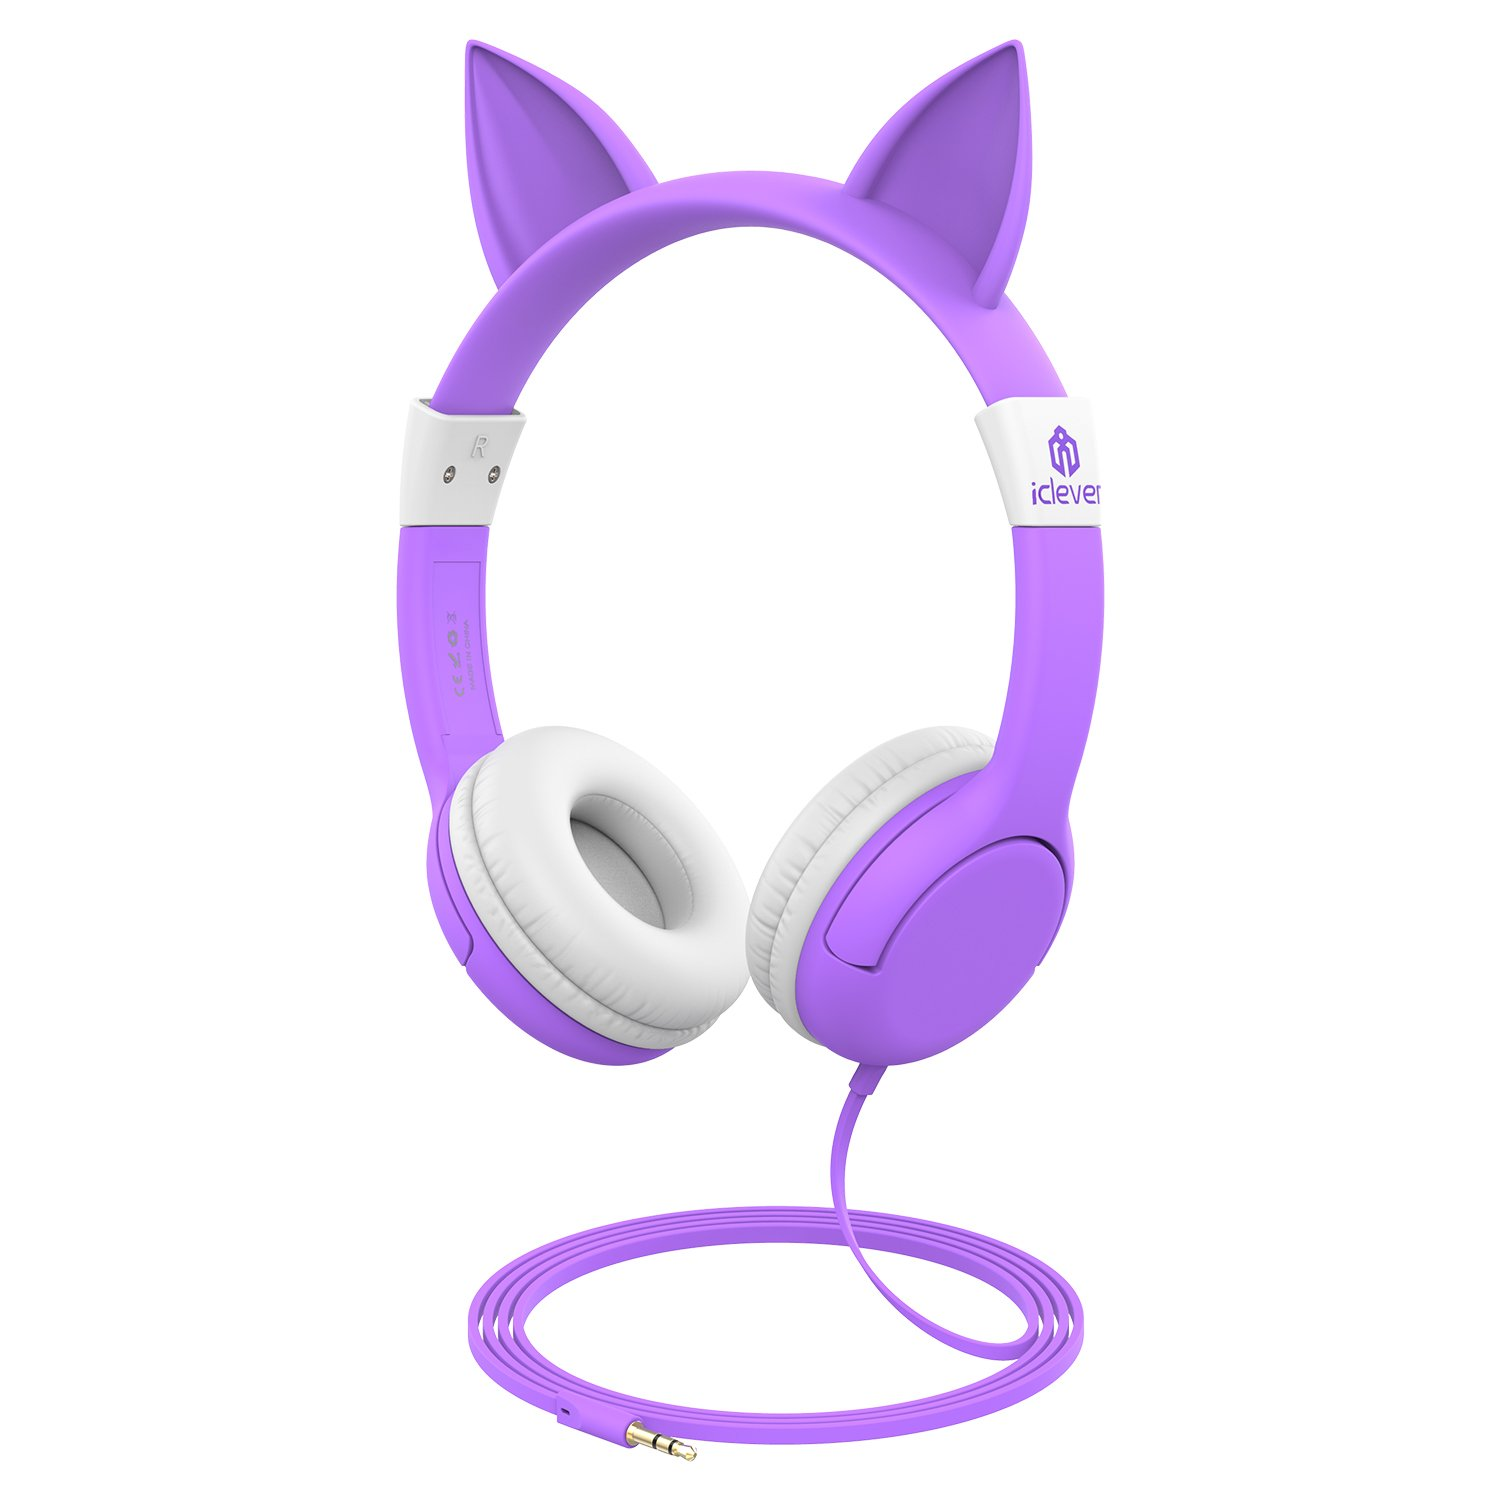 368ddaefe71 iClever BoostCare Kids Headphones, Wired On-Ear Headphones with Cat ...